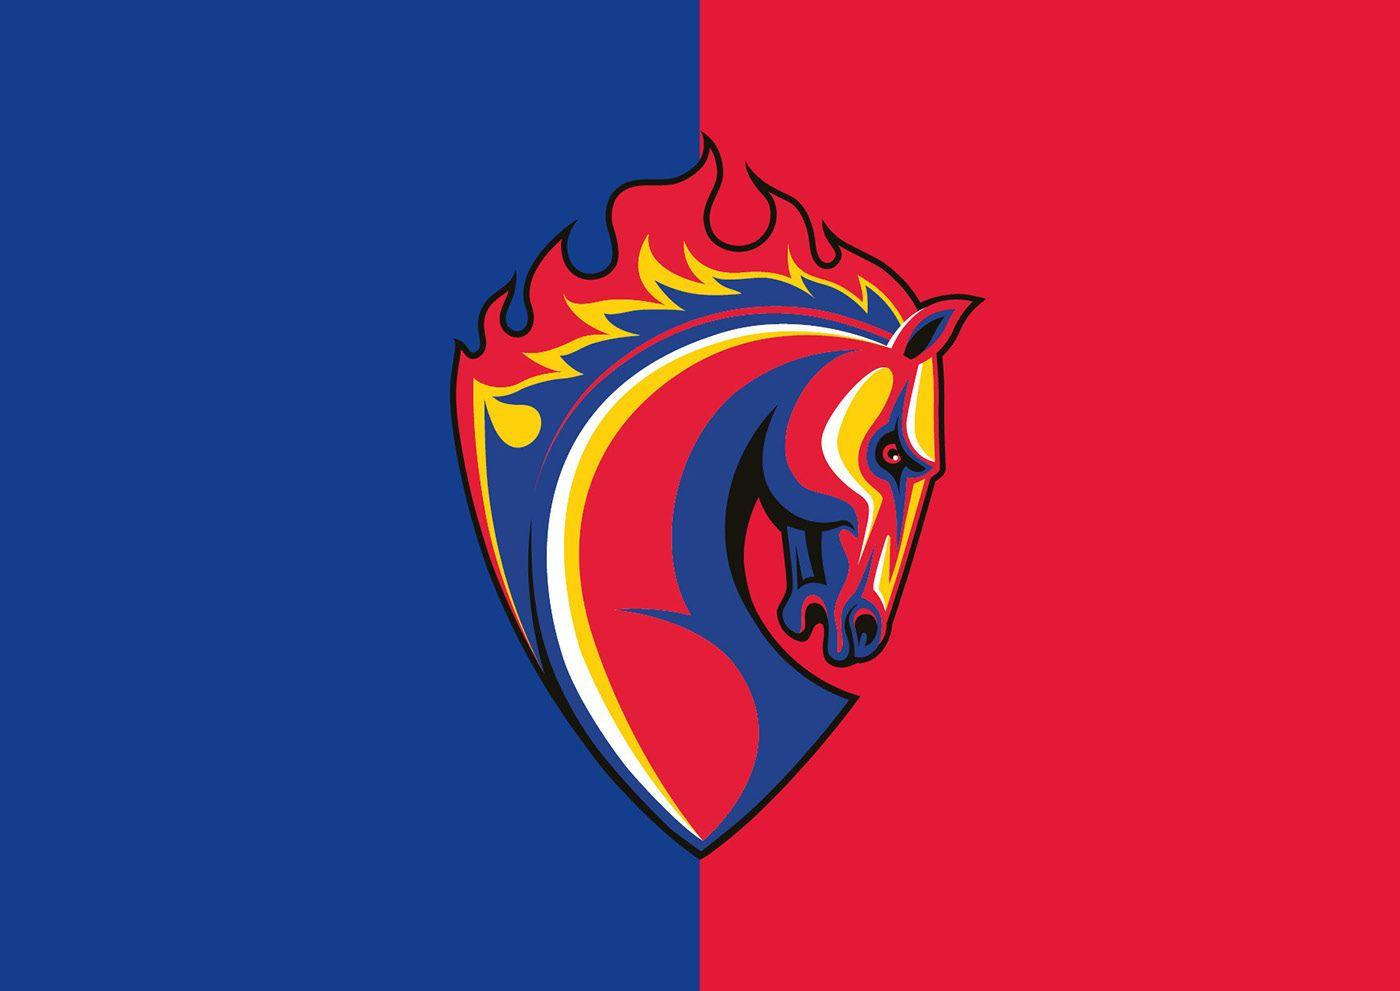 Professional Football Club CSKA Moscow Symbol on Behance